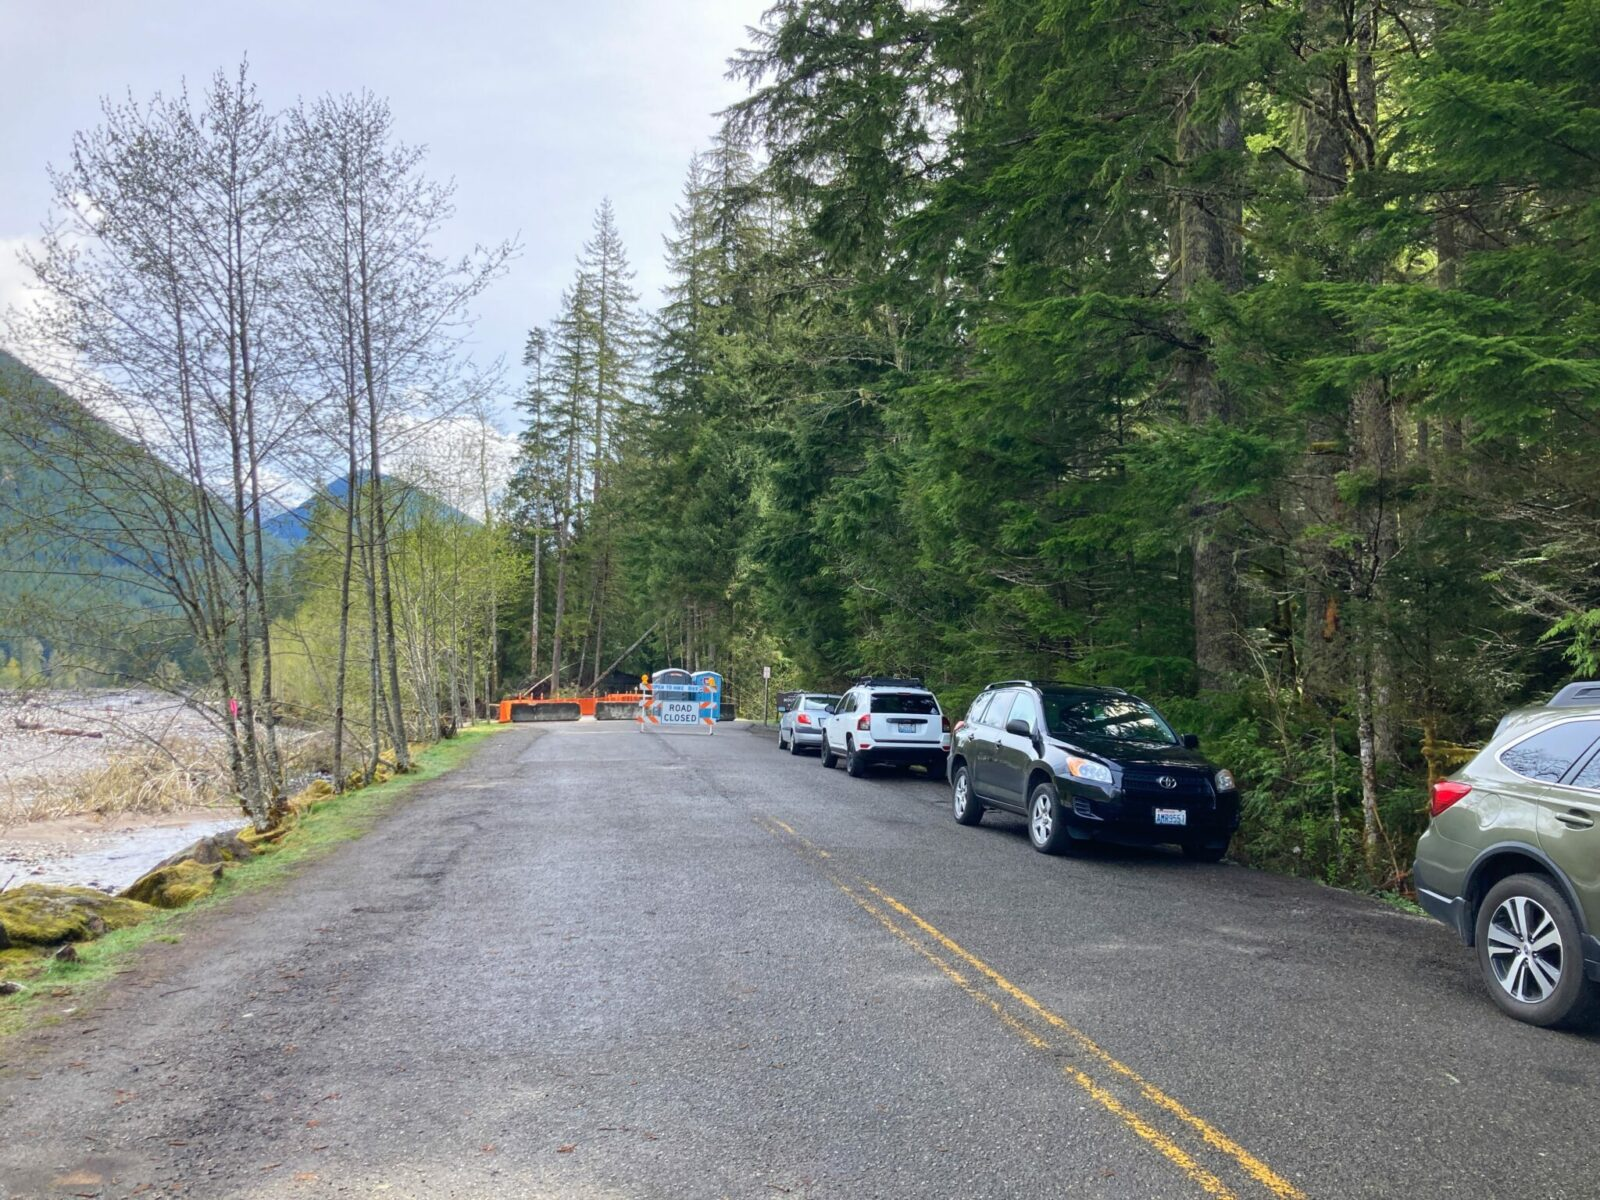 A two lane paved road ends at a barricade with a road closed sign and two port potties. Four cars are parked along the side of the road. There is a forest, hillsides and a river along the side of the road.